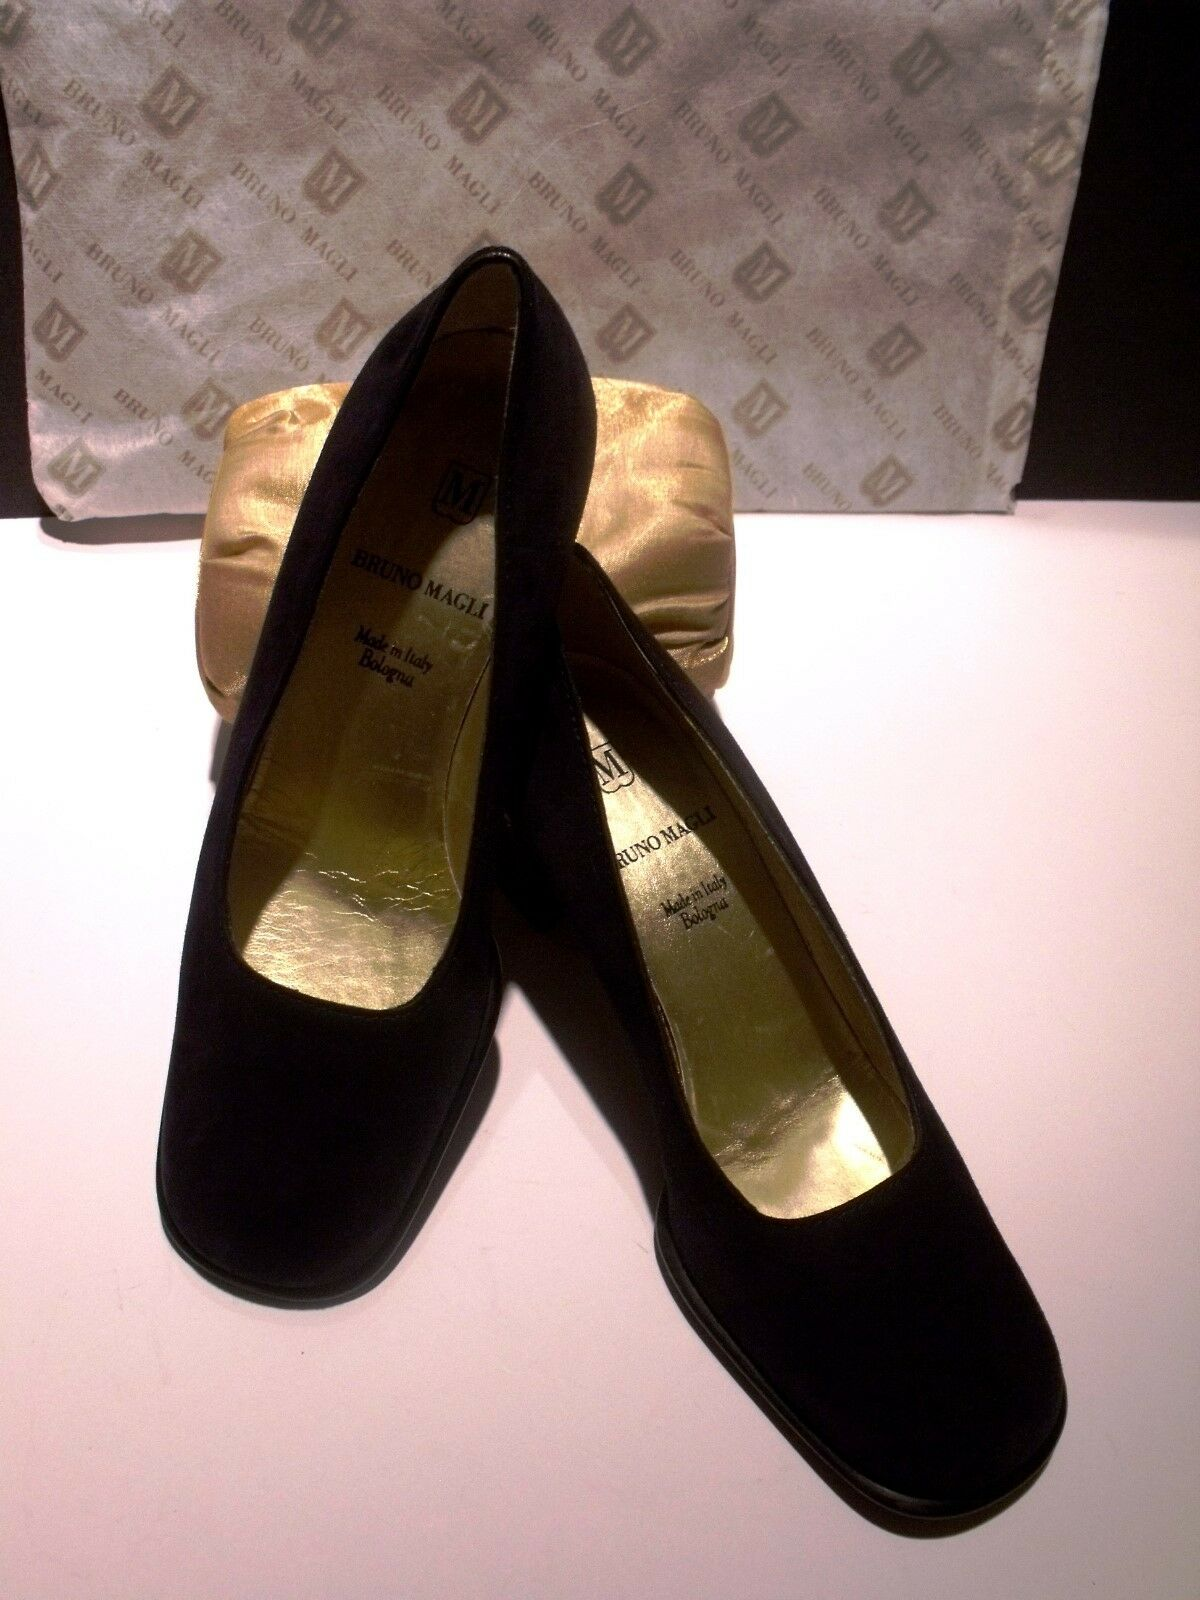 Exquisite BRUNO MAGLI Navy Suede Schuhes Sz 6 BPerfect.